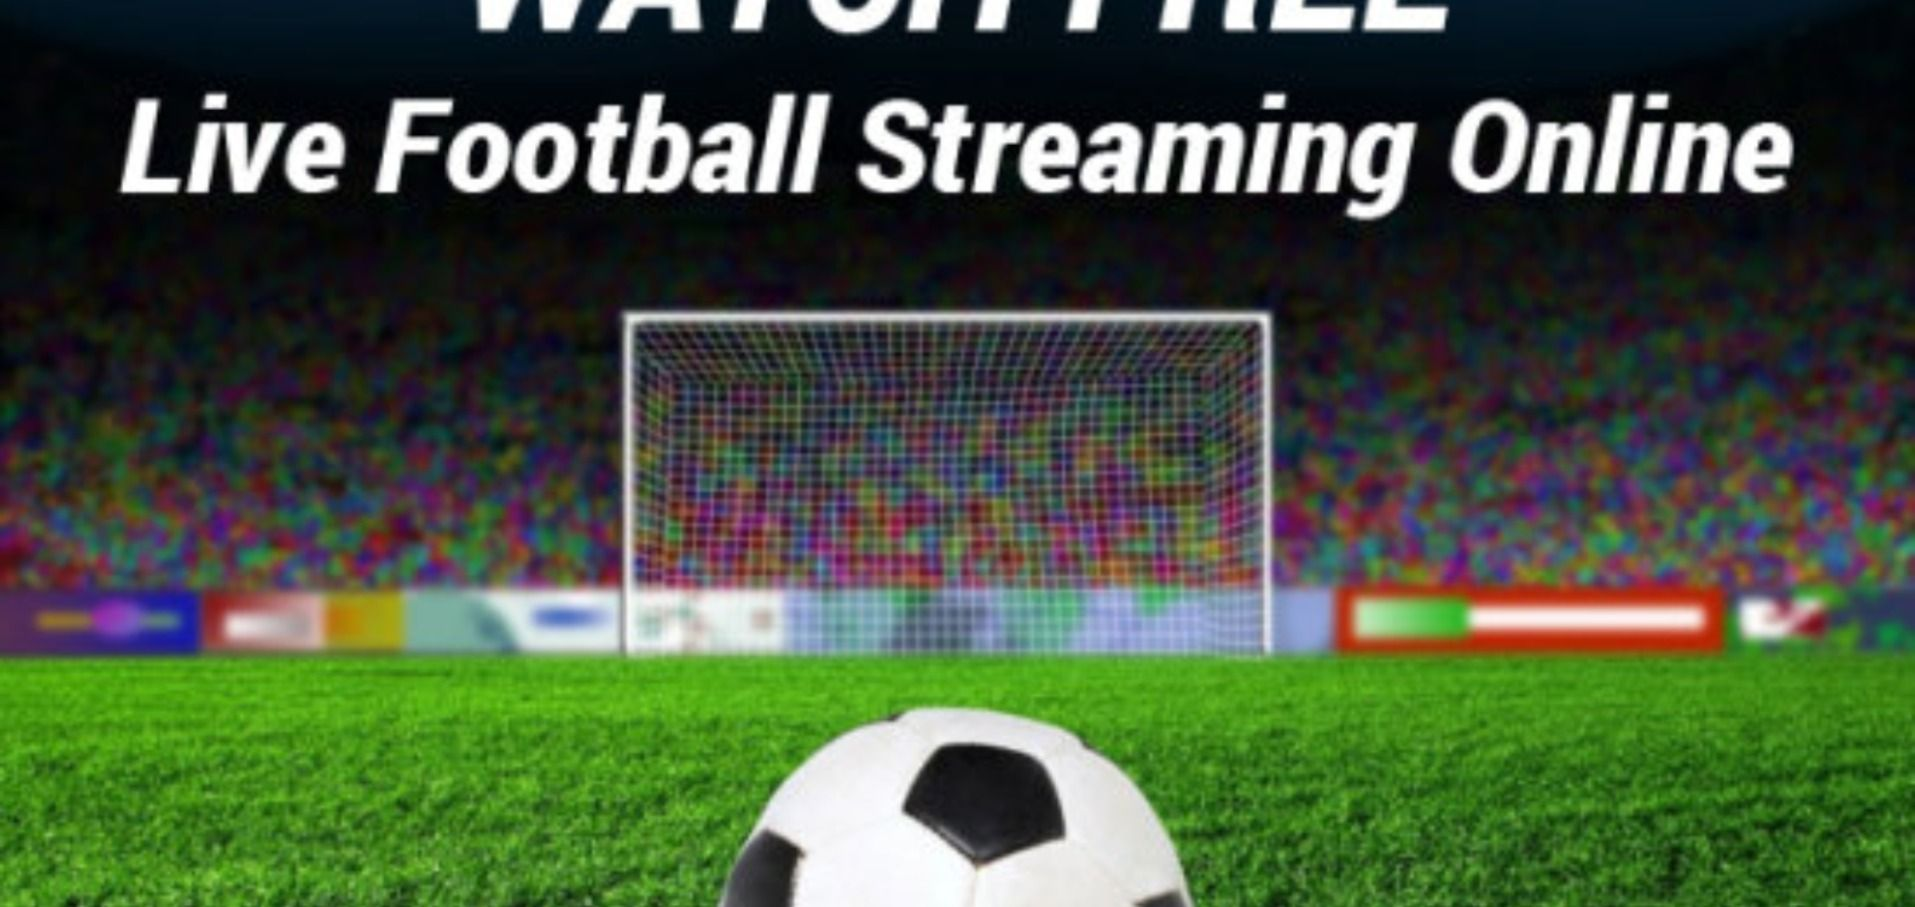 Premier League Live Stream How To Watch Every Game 24 7 Online And From Anywhere In 2020 Live Football Streaming Sporting Live Nfl Network